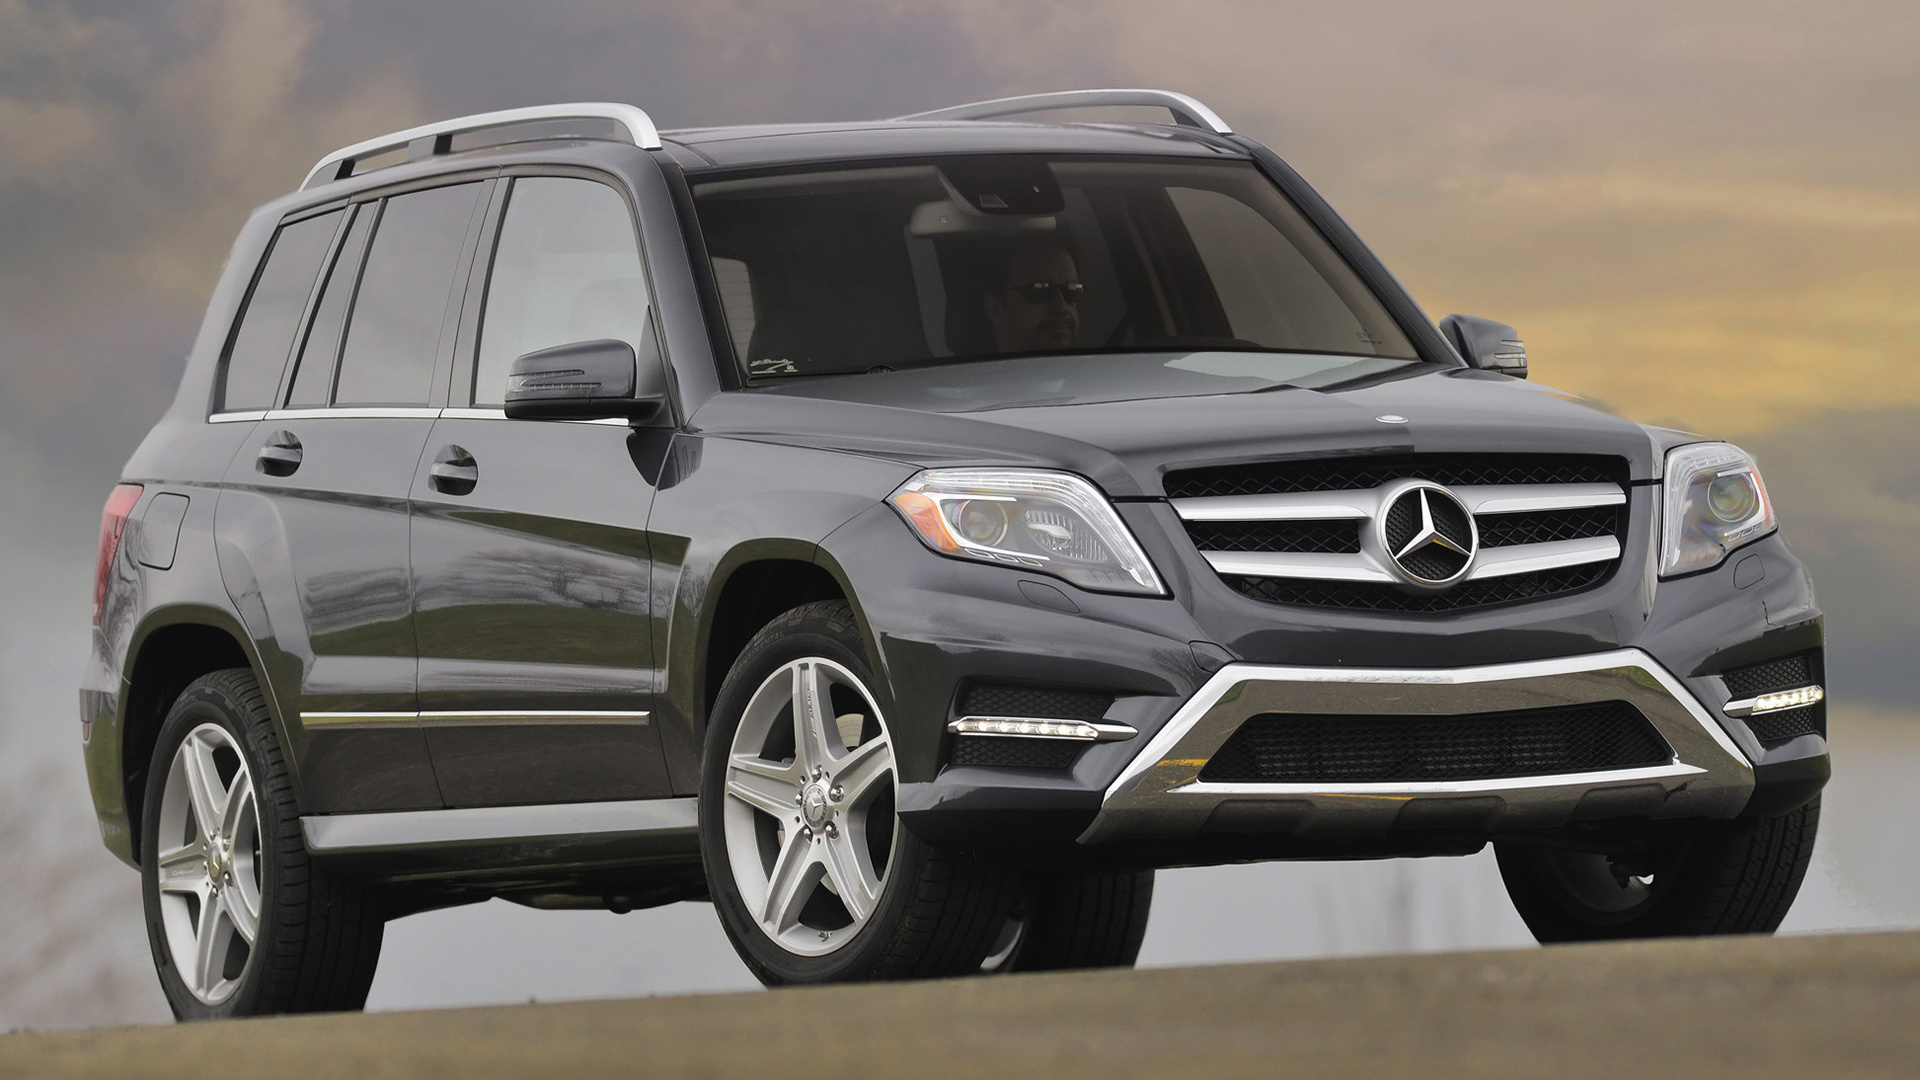 mercedes benz glk class amg styling 2013 us wallpapers and hd images car pixel. Black Bedroom Furniture Sets. Home Design Ideas